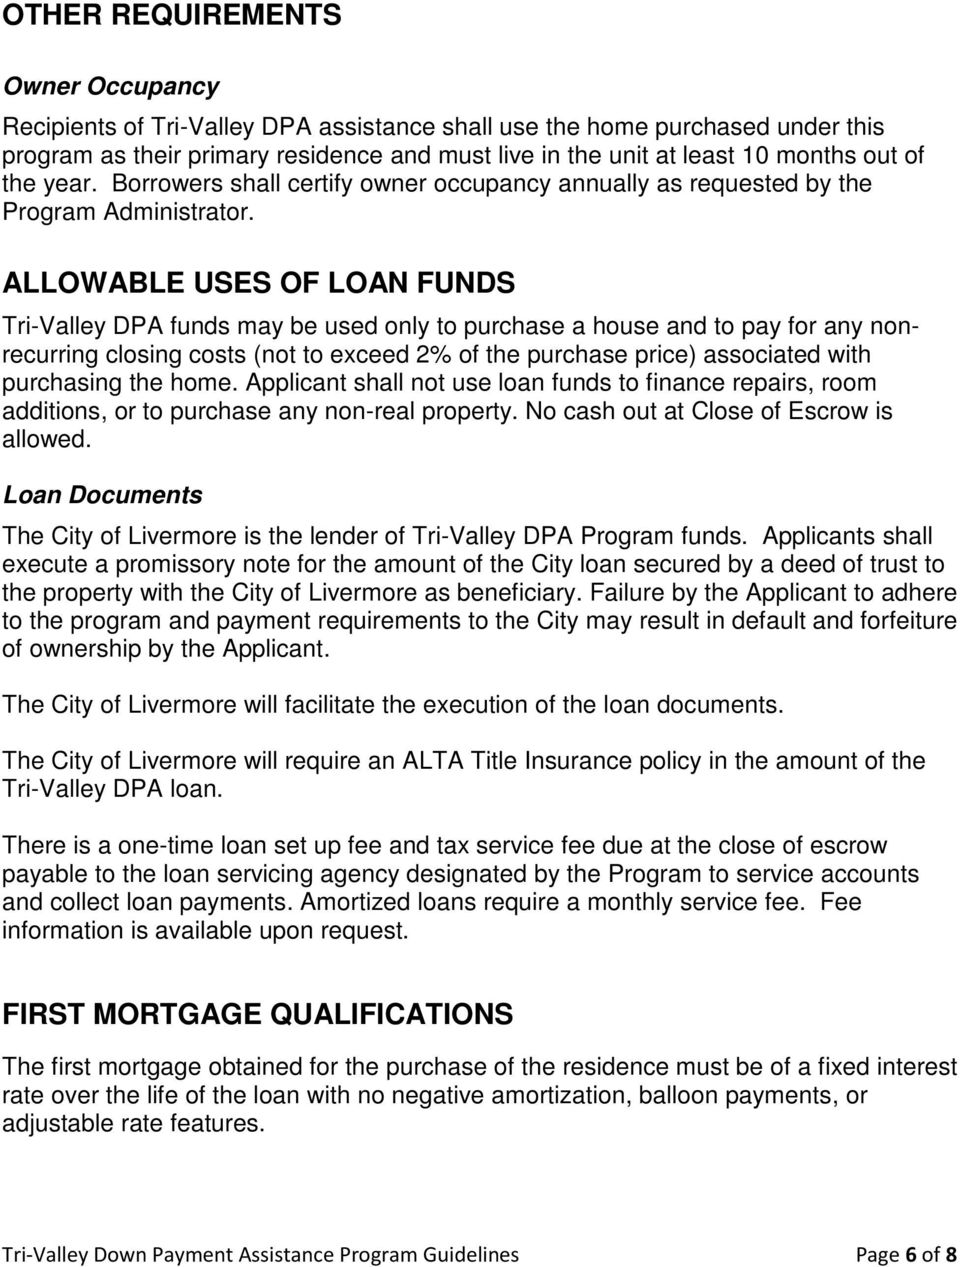 ALLOWABLE USES OF LOAN FUNDS Tri-Valley DPA funds may be used only to purchase a house and to pay for any nonrecurring closing costs (not to exceed 2% of the purchase price) associated with